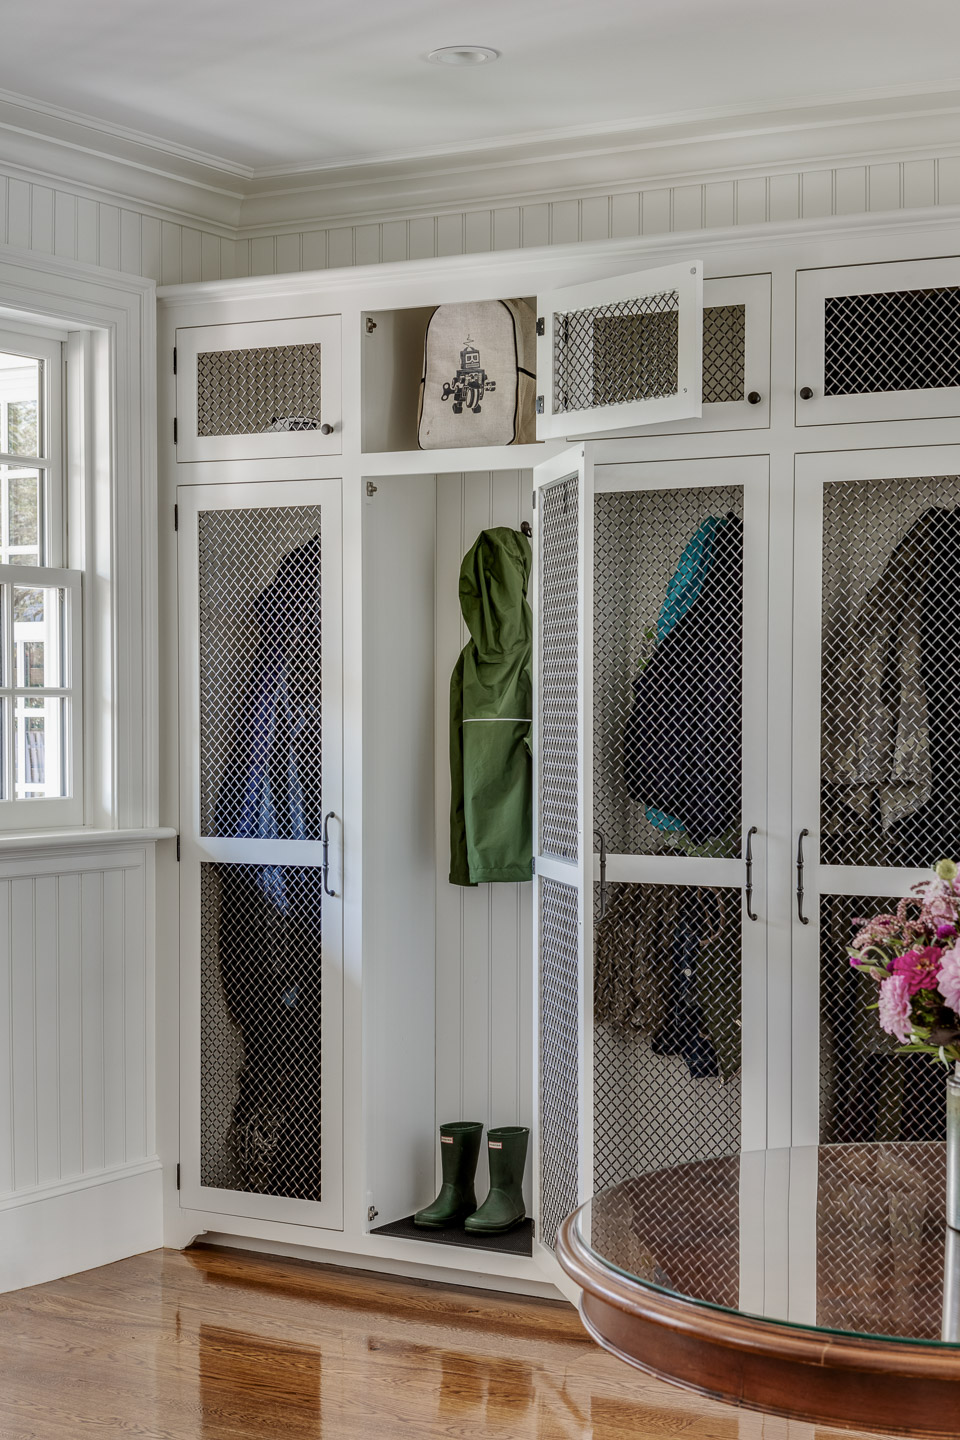 Mudroom featuring Chicken Wire Doors by Patrick Ahearn Architect